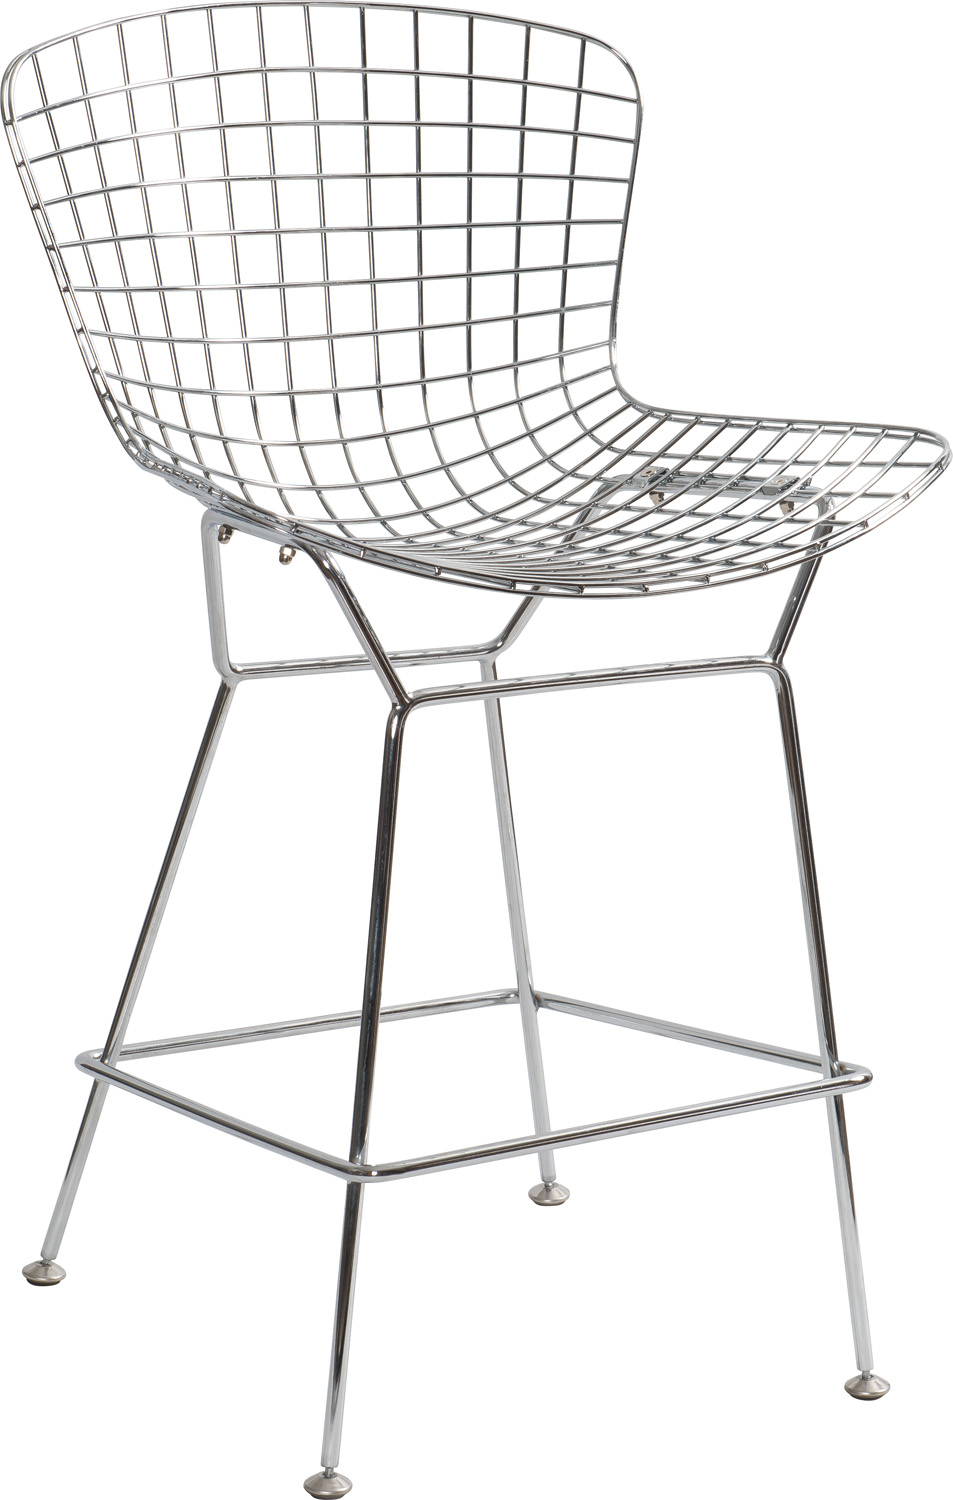 JSWMC-03A Low Back and Medium-heeled Wired Metal Leisure Chair Without Armrest